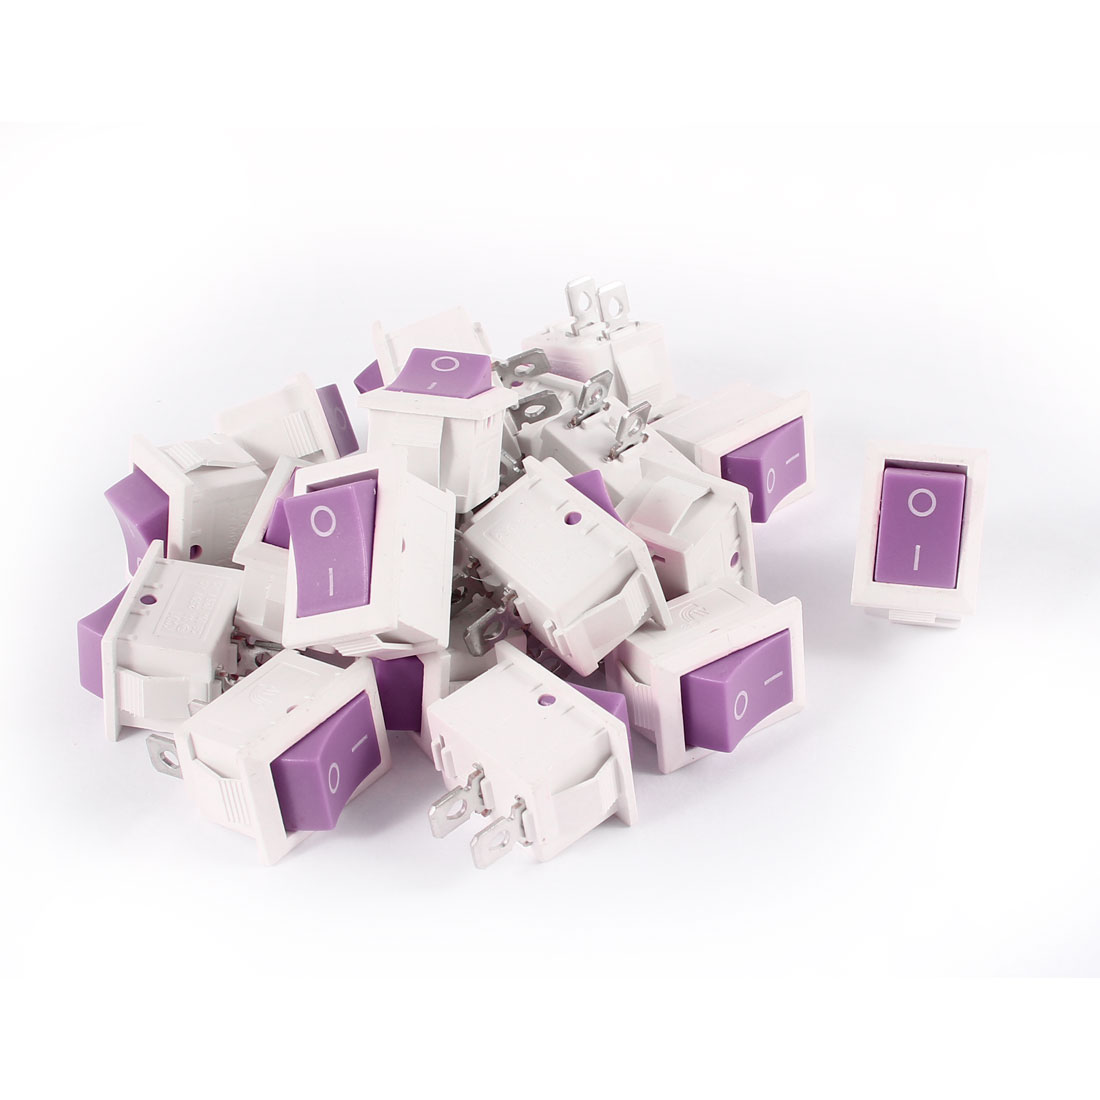 20 Pcs KCD1 AC 250V 6A 125V 10A 2Pin SPST Power ON/OFF Panel Mount Rocker Switch Purple White